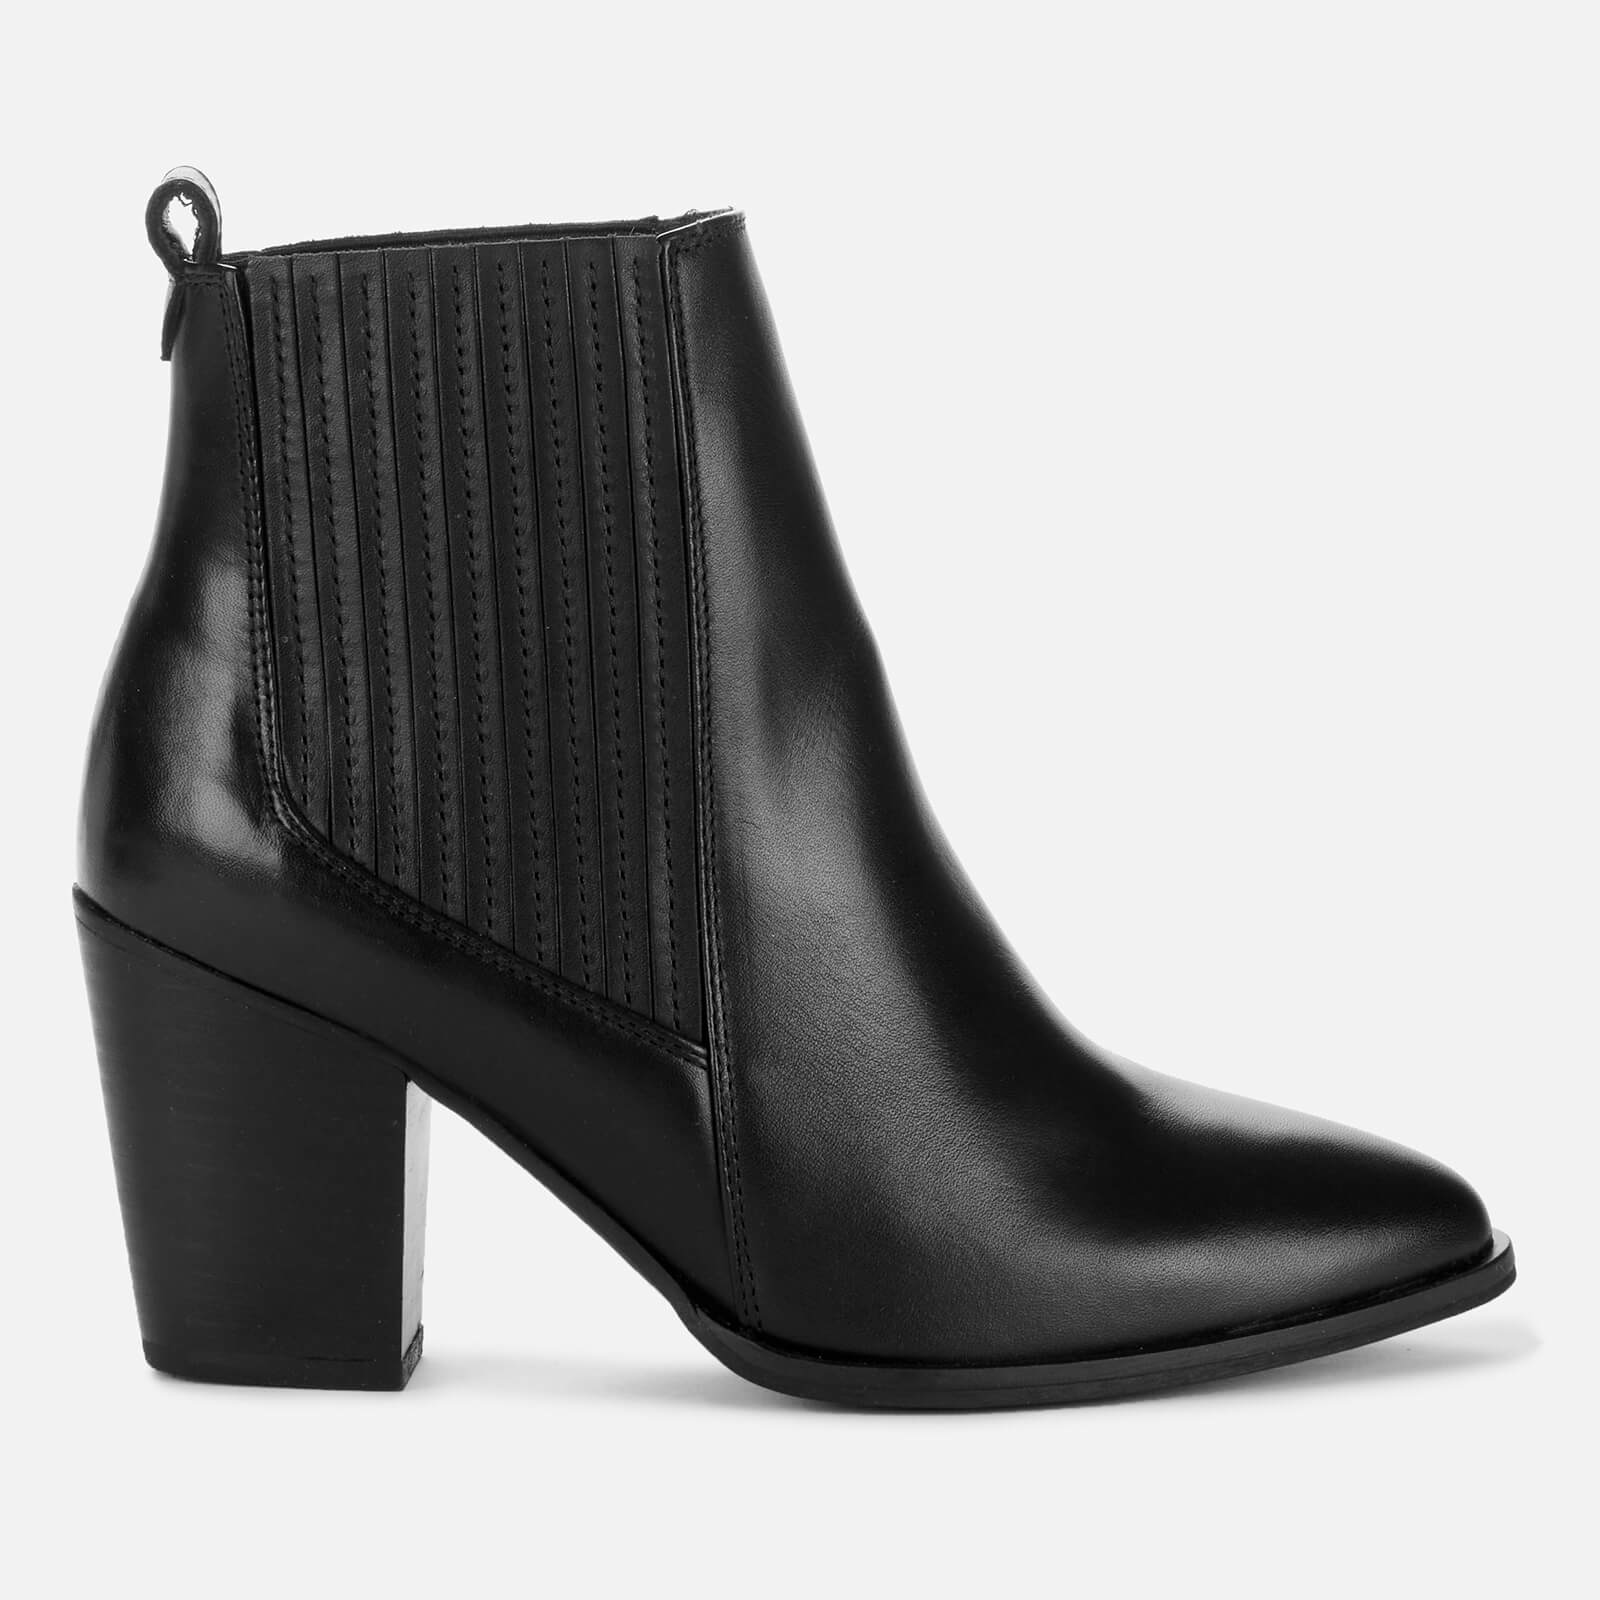 Clarks Women's West Lo Leather Heeled Ankle Boots - Black - Uk 3